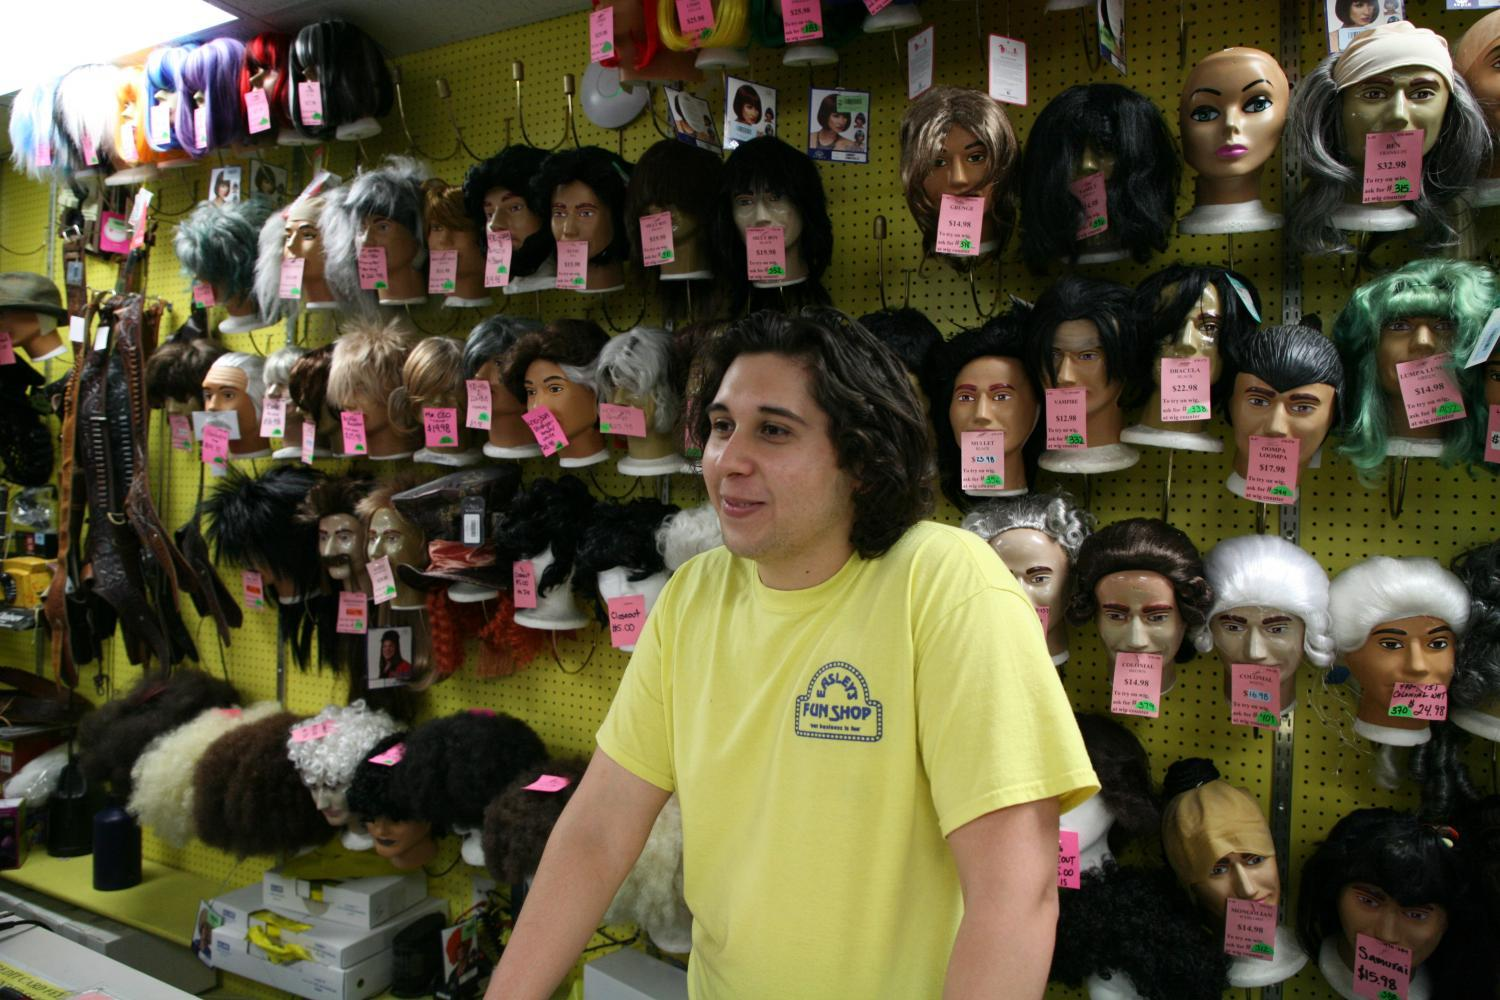 Mike Hernandez stands in front rows of wigs at Easley